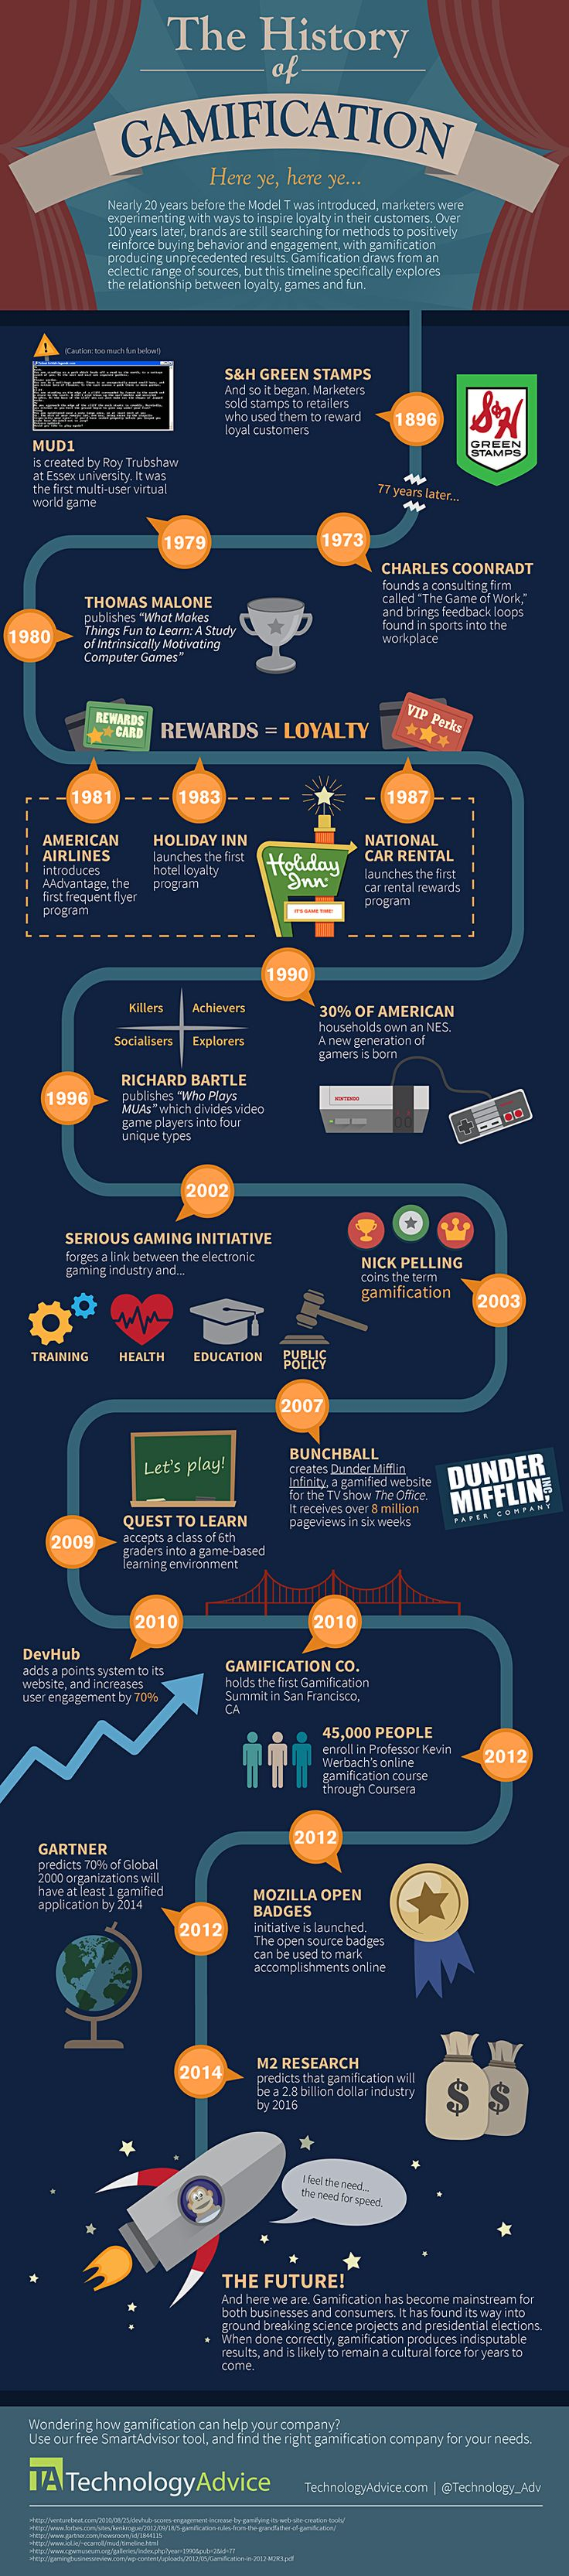 The history of gamification